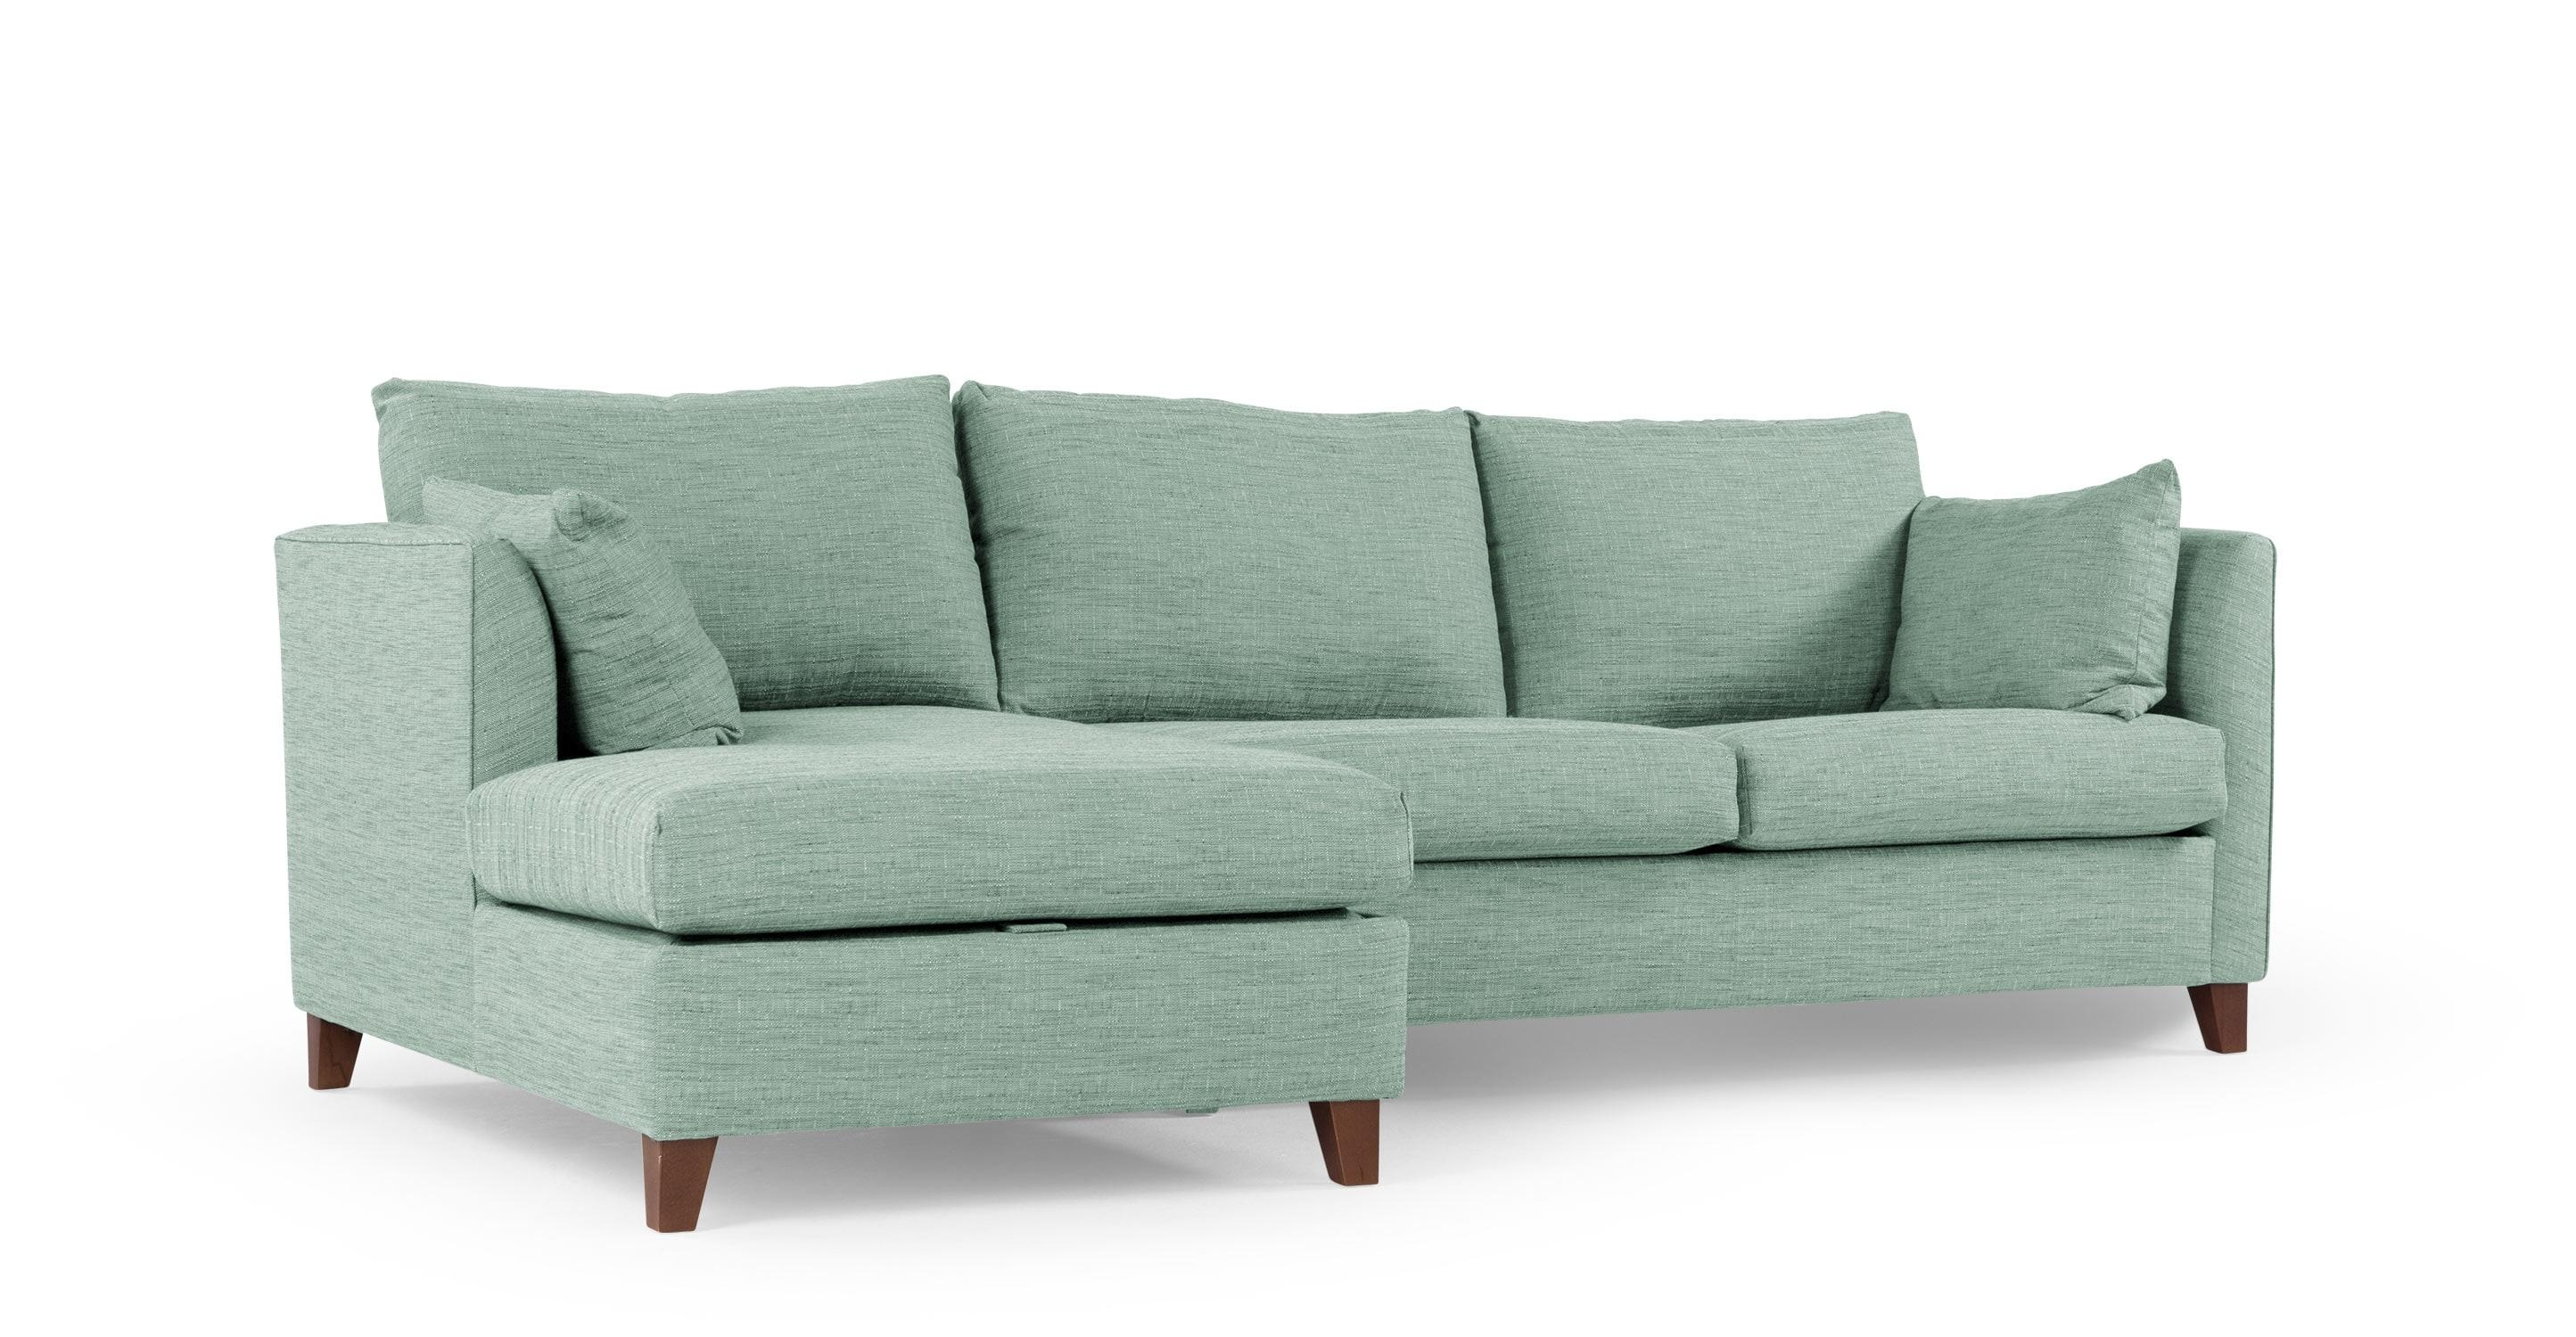 Bari Corner Storage Sofabed, Left Hand Facing, Malva Aqua | Made Within Aqua Sofa Beds (Image 2 of 20)